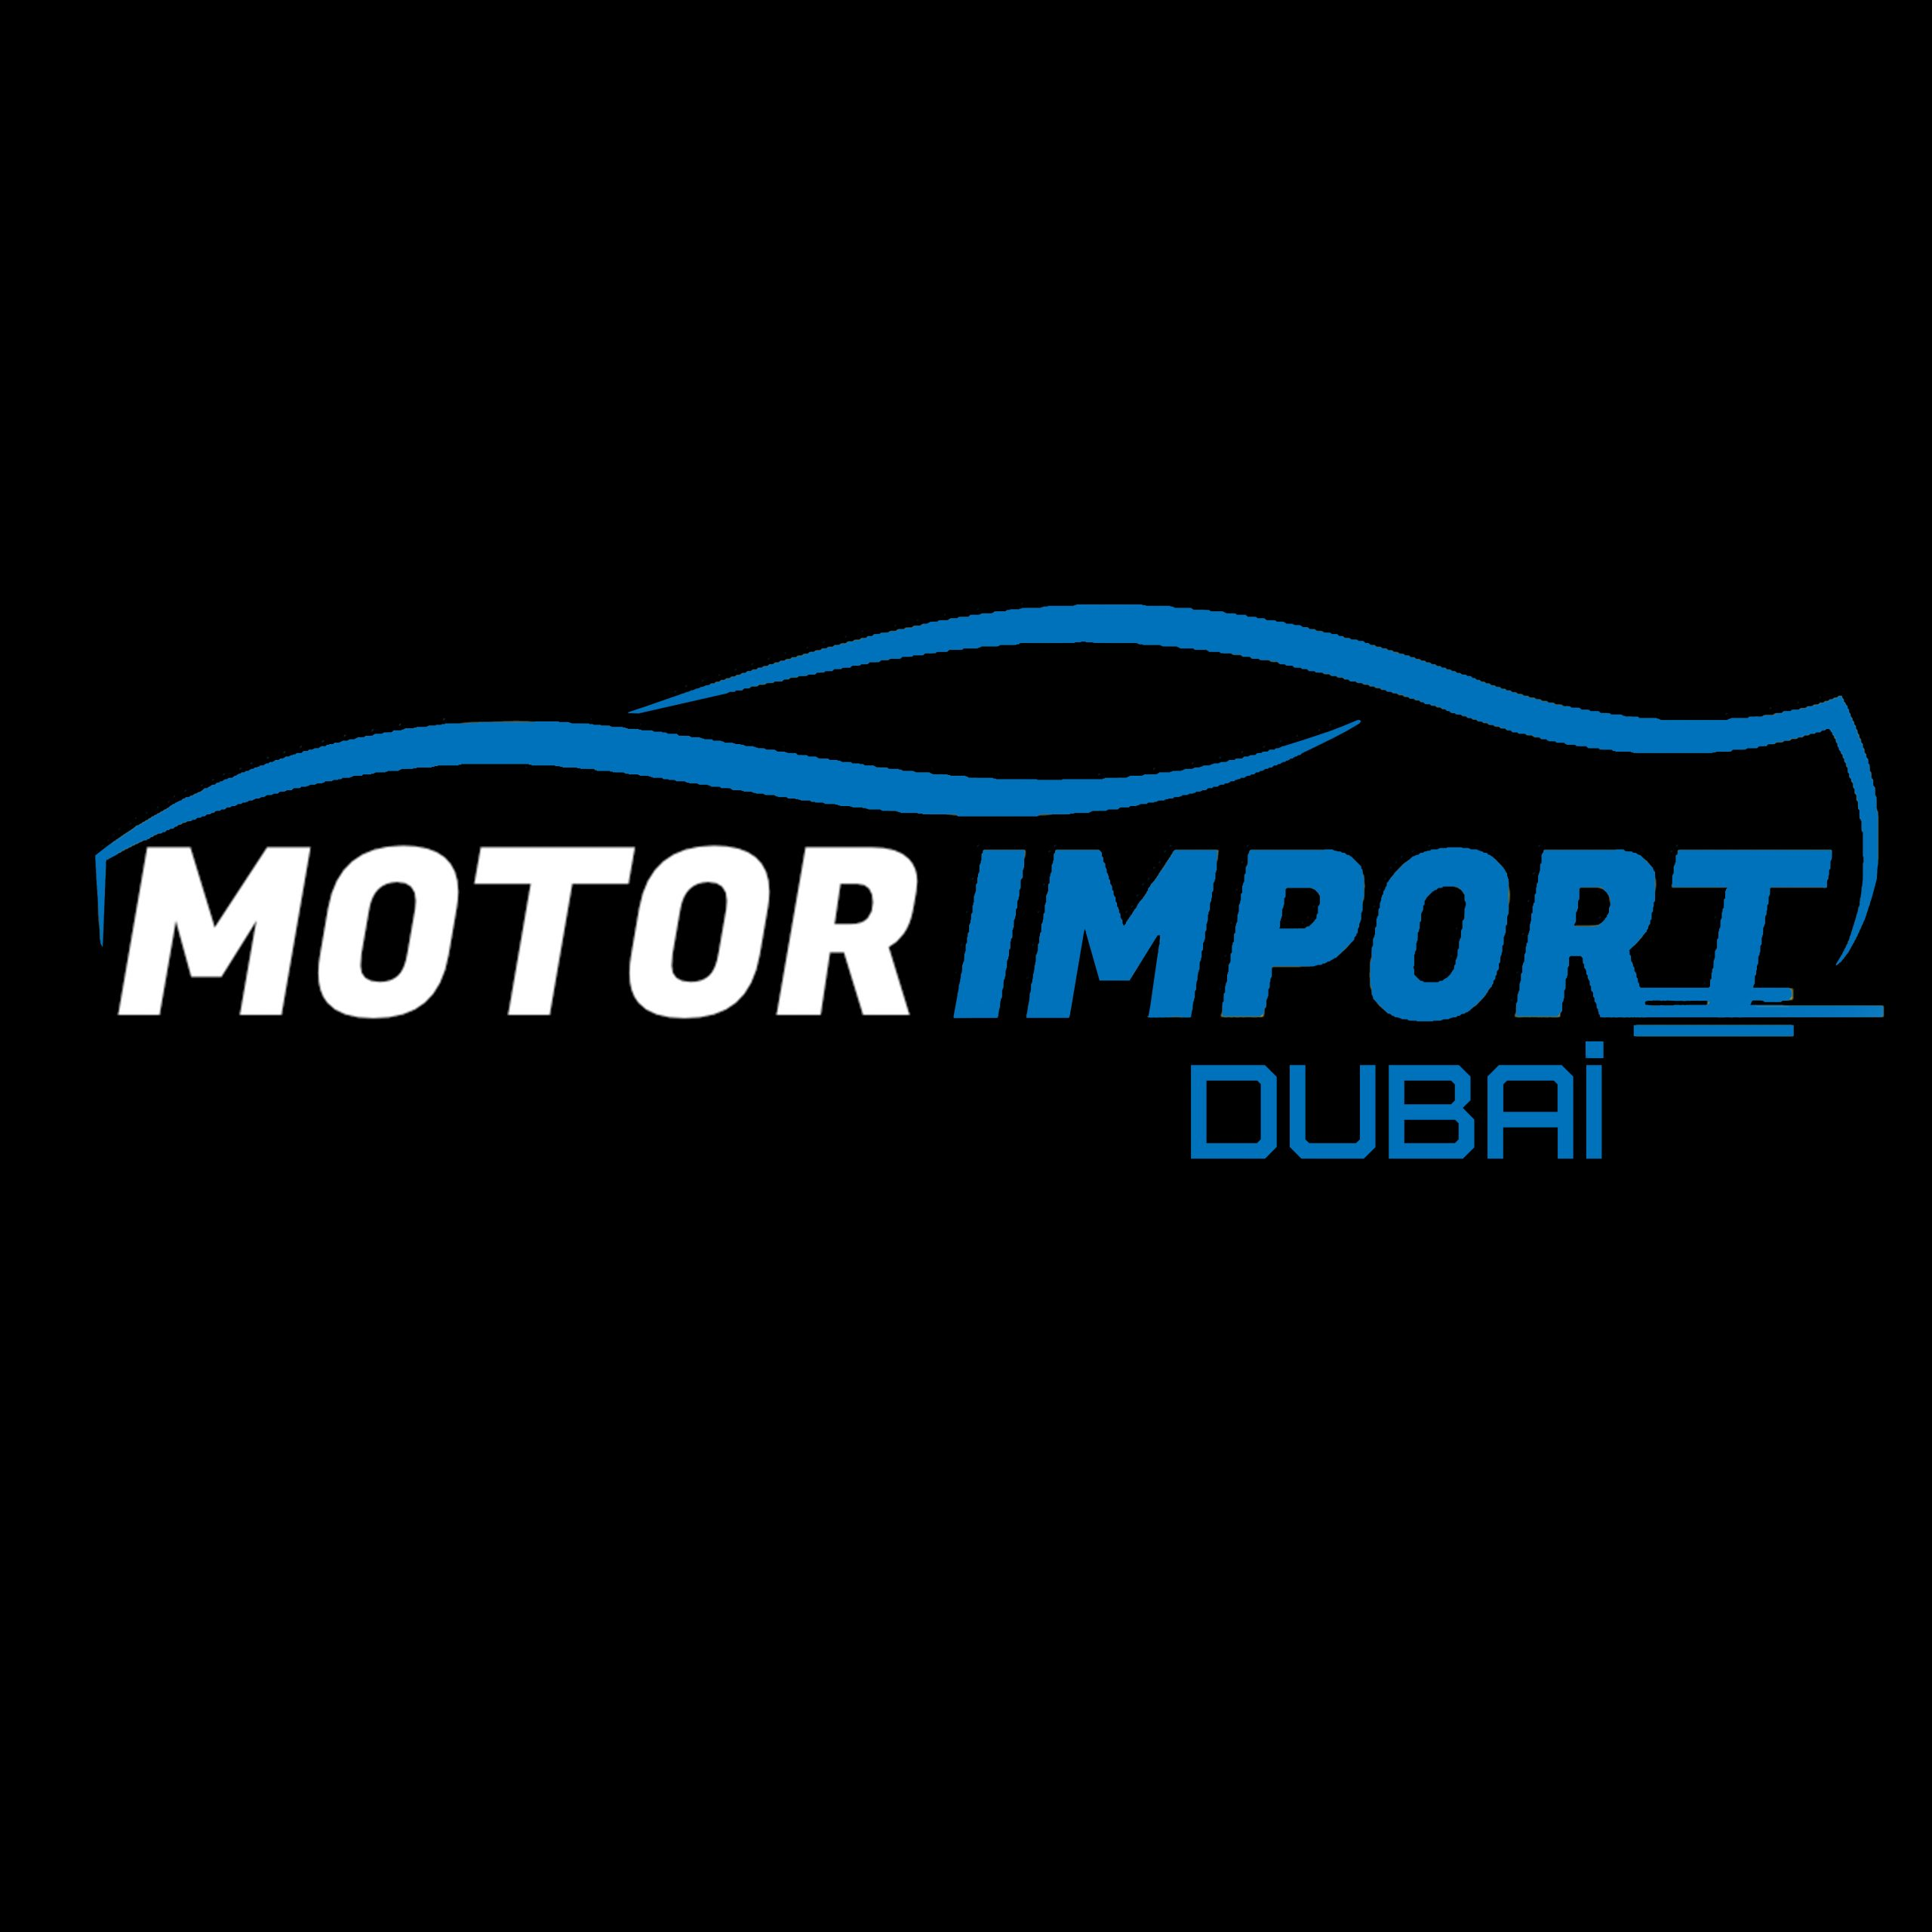 SQUARE EMPTYMOTOR IMPORT DUBAI scaled - SUBARU Japon importation voiture du Japon SUBARU importation vehicule Japon motorimport Tokyo